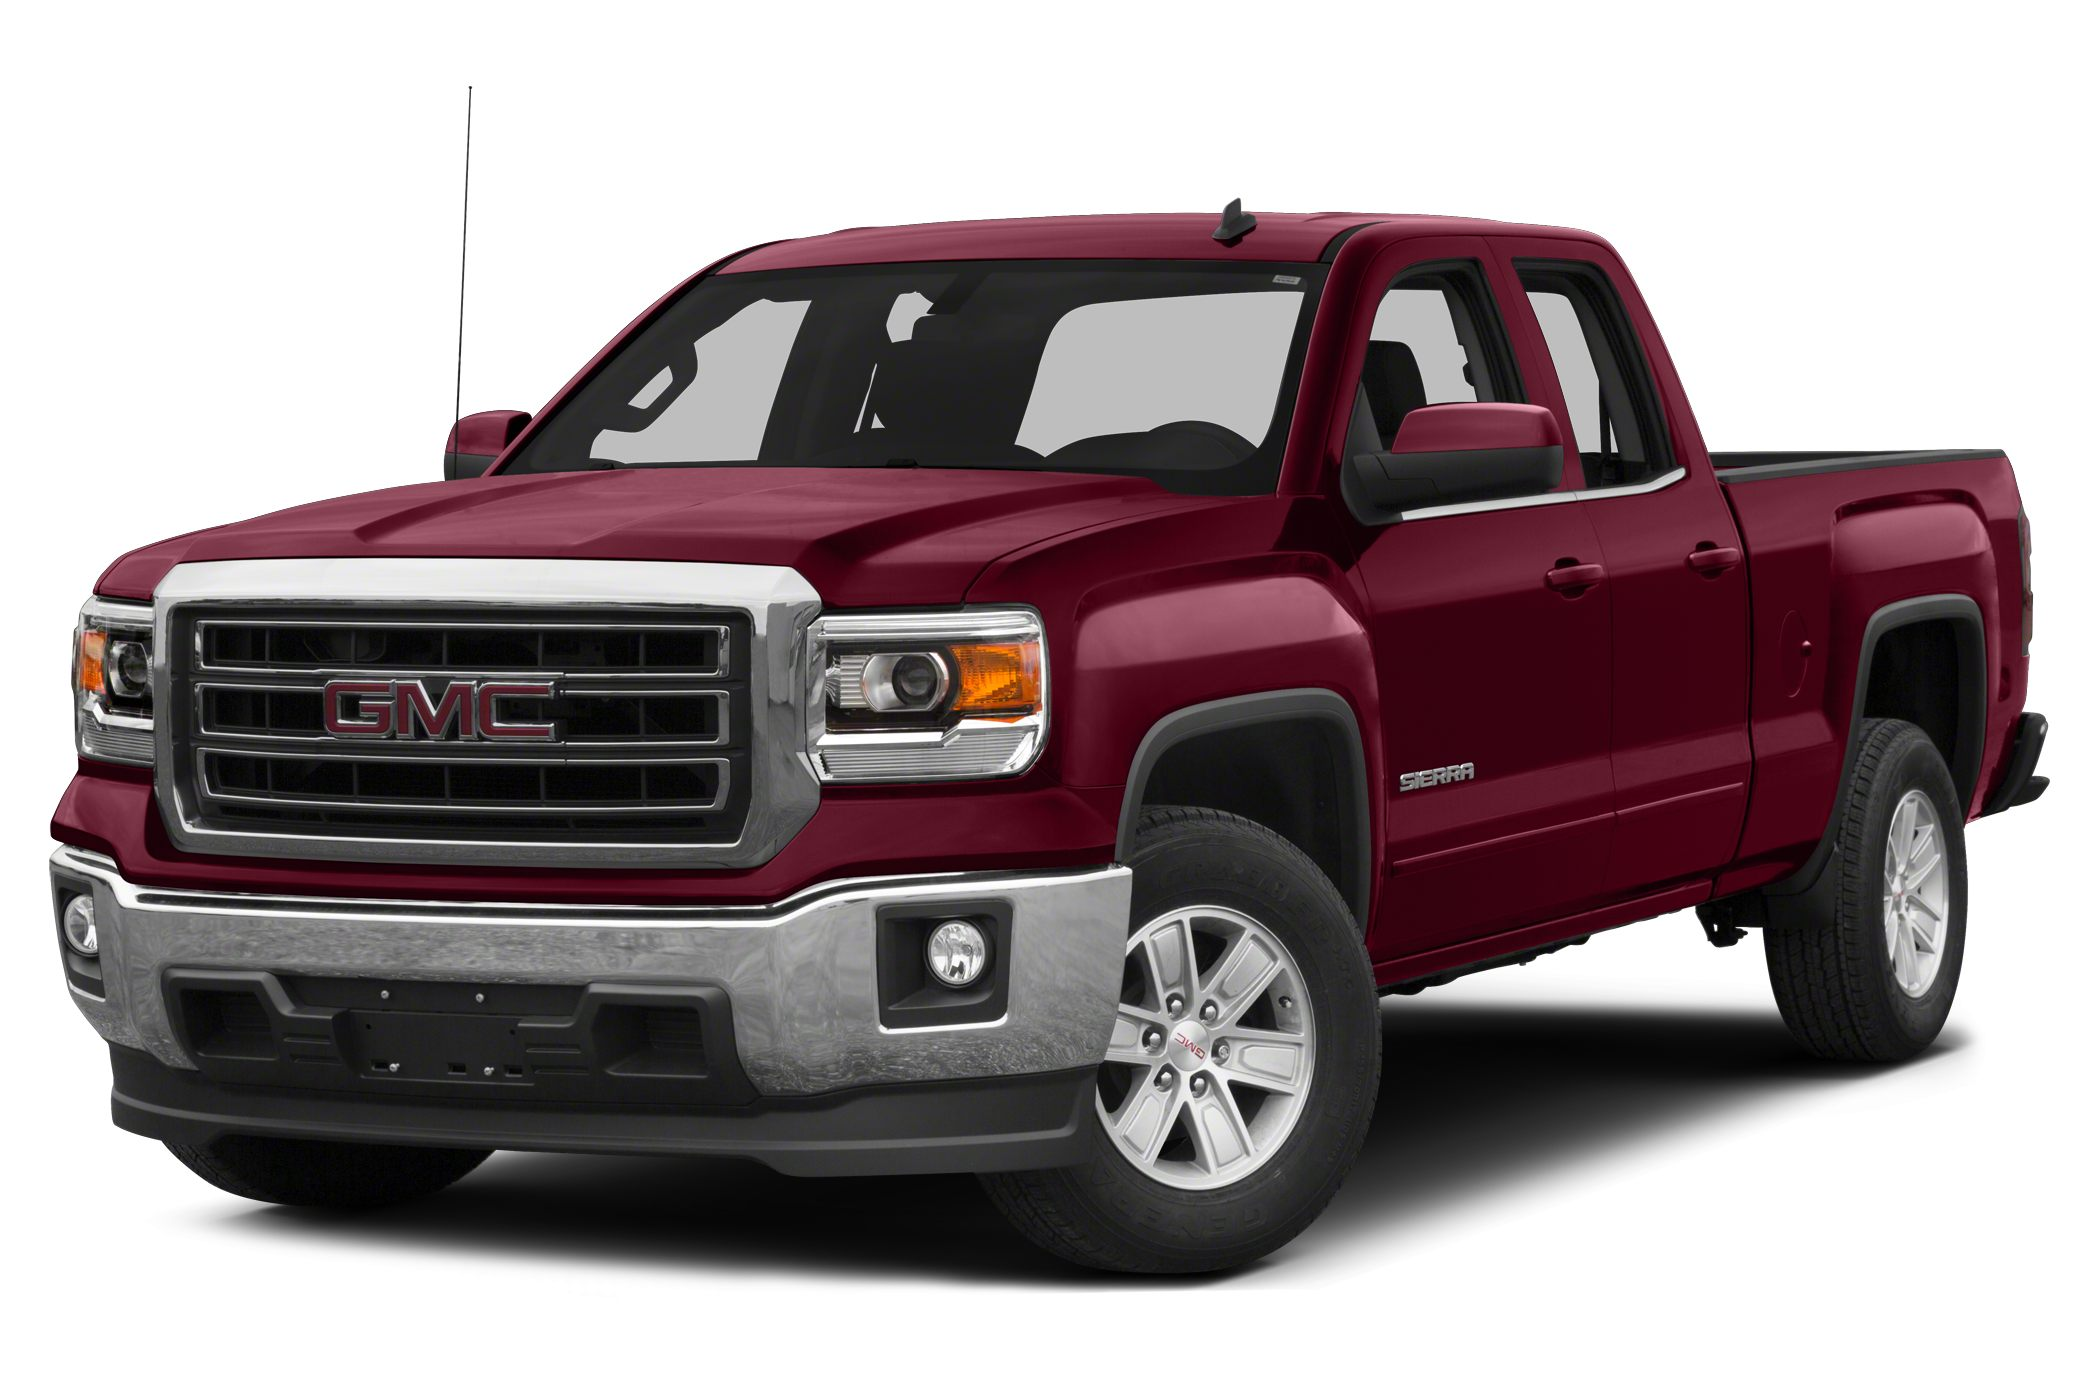 2015 GMC Sierra 1500 SLE Crew Cab Pickup for sale in Menomonie for $40,554 with 6 miles.